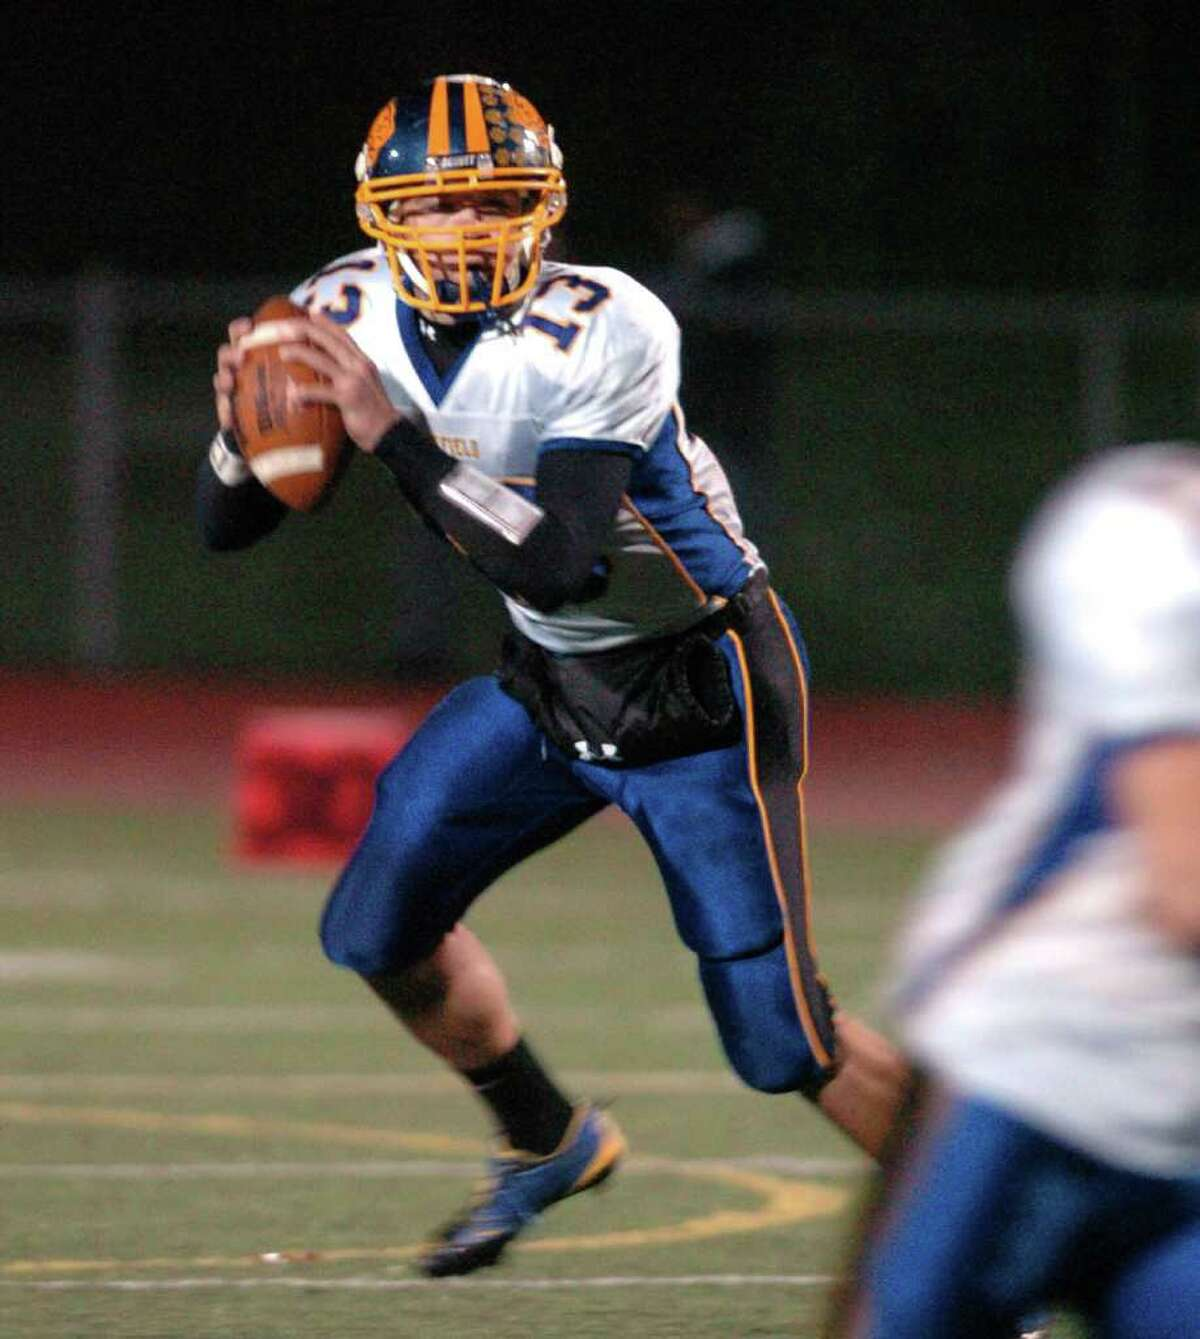 Brookfield's 13, Boeing Brown sets up for a pass during the football game against Pomperaug at Southbury High School Nov. 5, 2010.